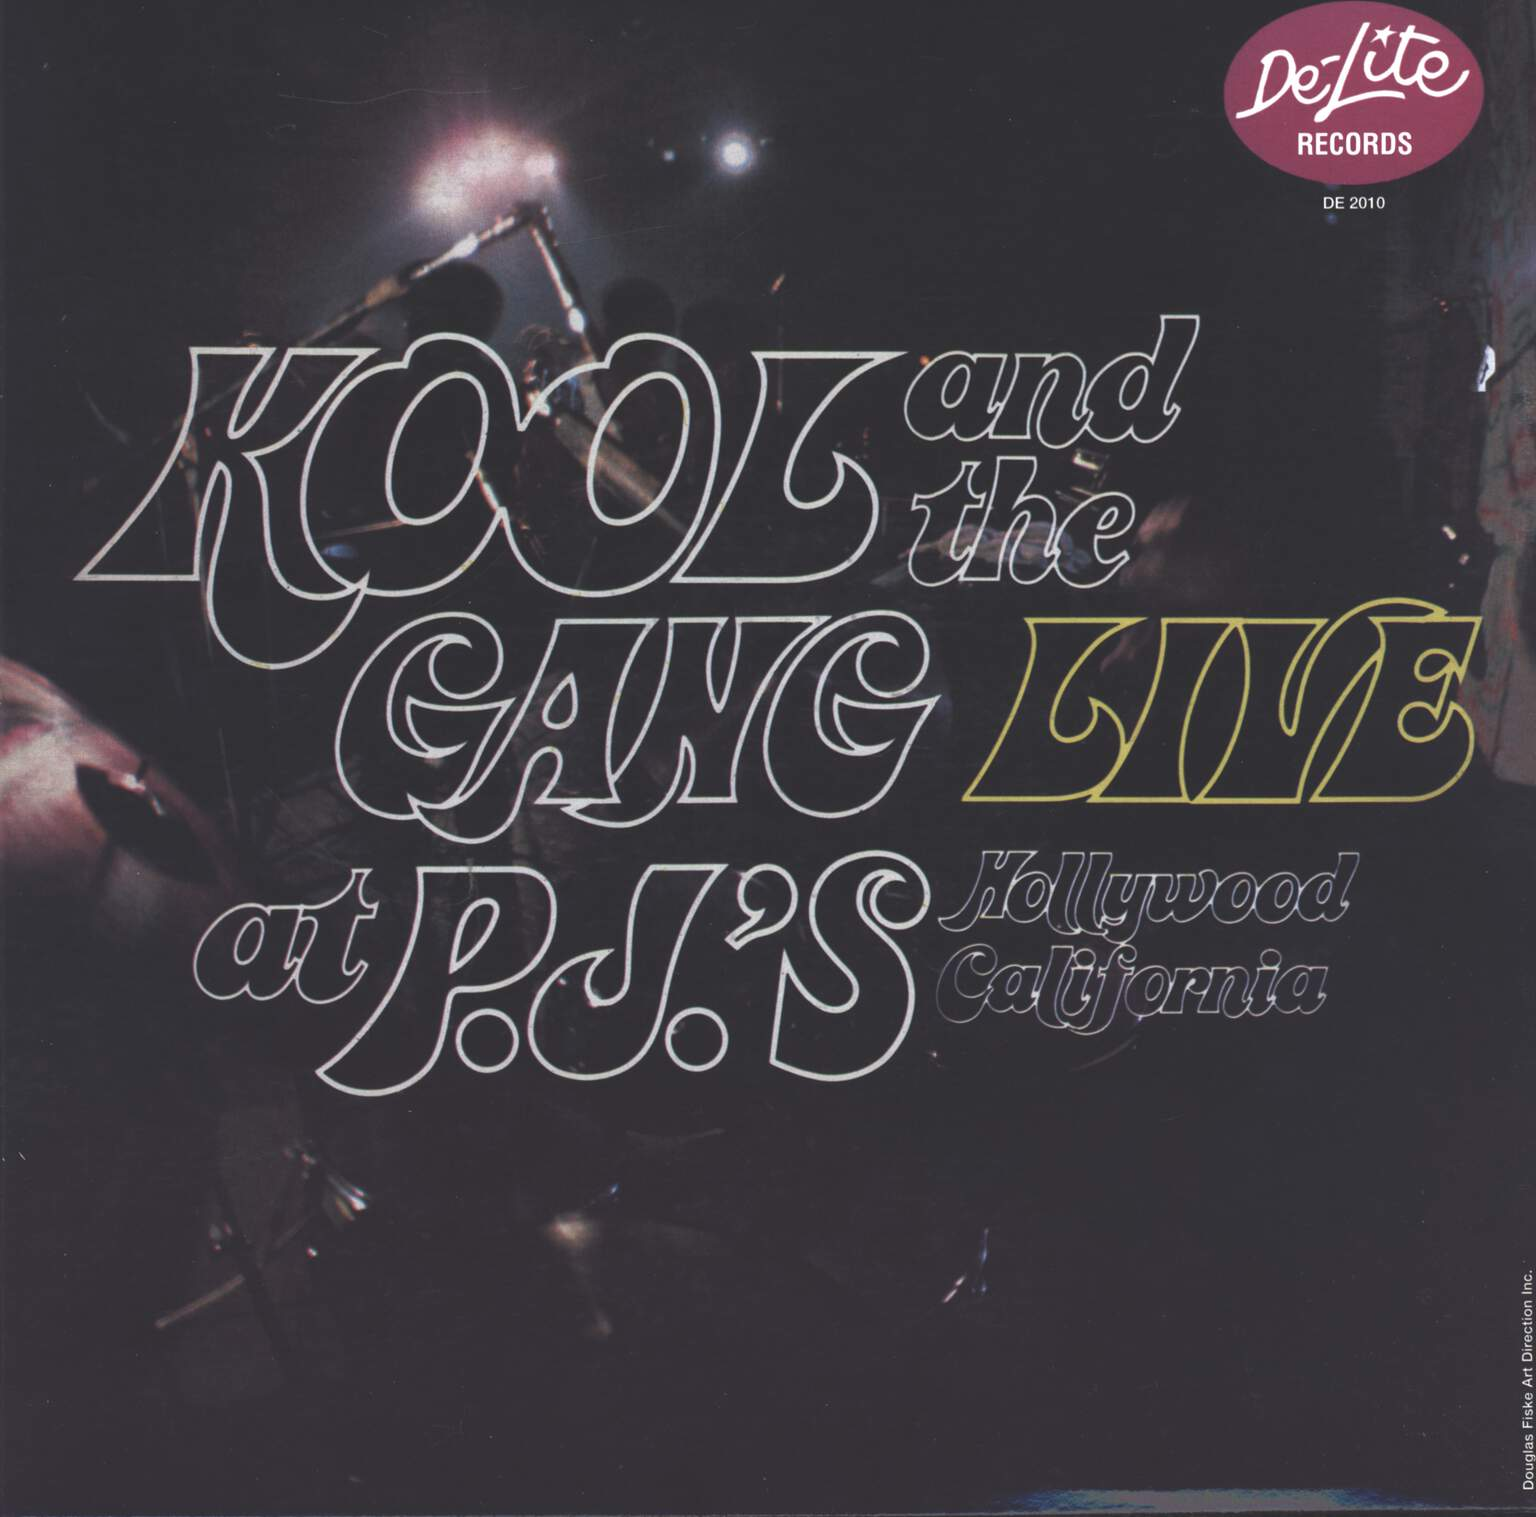 Kool & the Gang: Live At P.J.'s, LP (Vinyl)